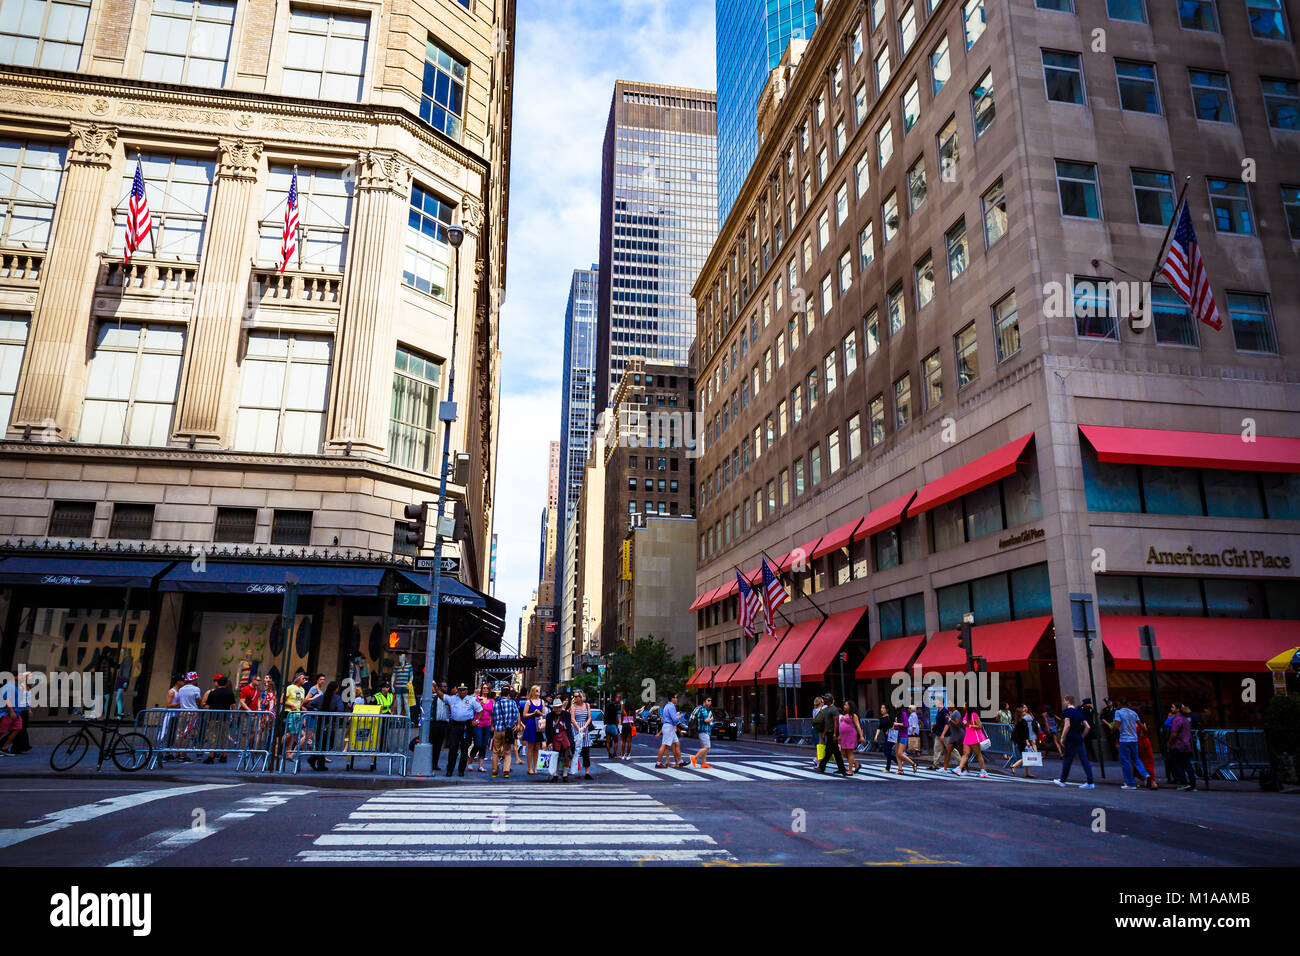 NEW YORK, NY - June 8th, 2014: detail of the 5th Avenue in Manhattan, New York one of the main shopping areas of - Stock Image